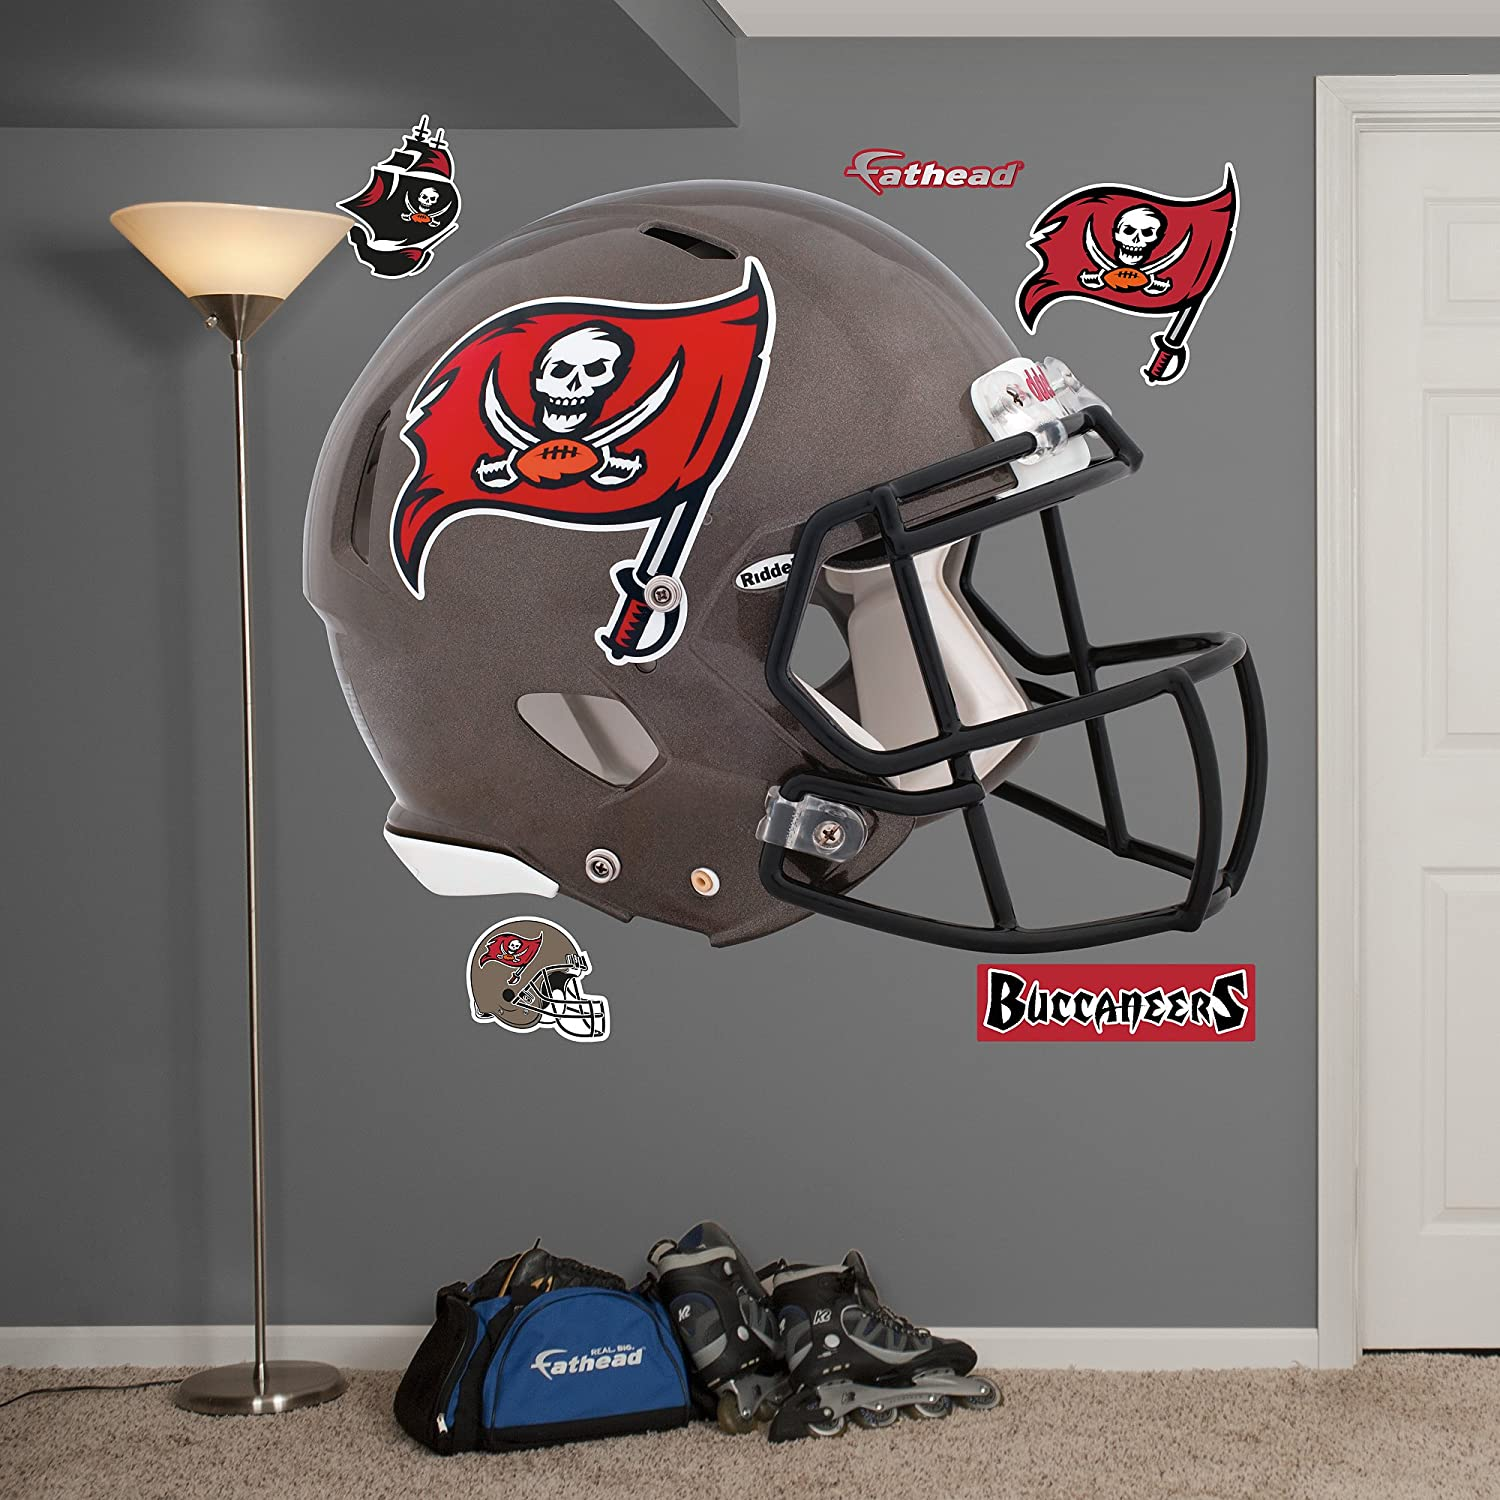 Fathead NFL Tampa Bay Buccaneers casco pared gráfica: Amazon.es ...